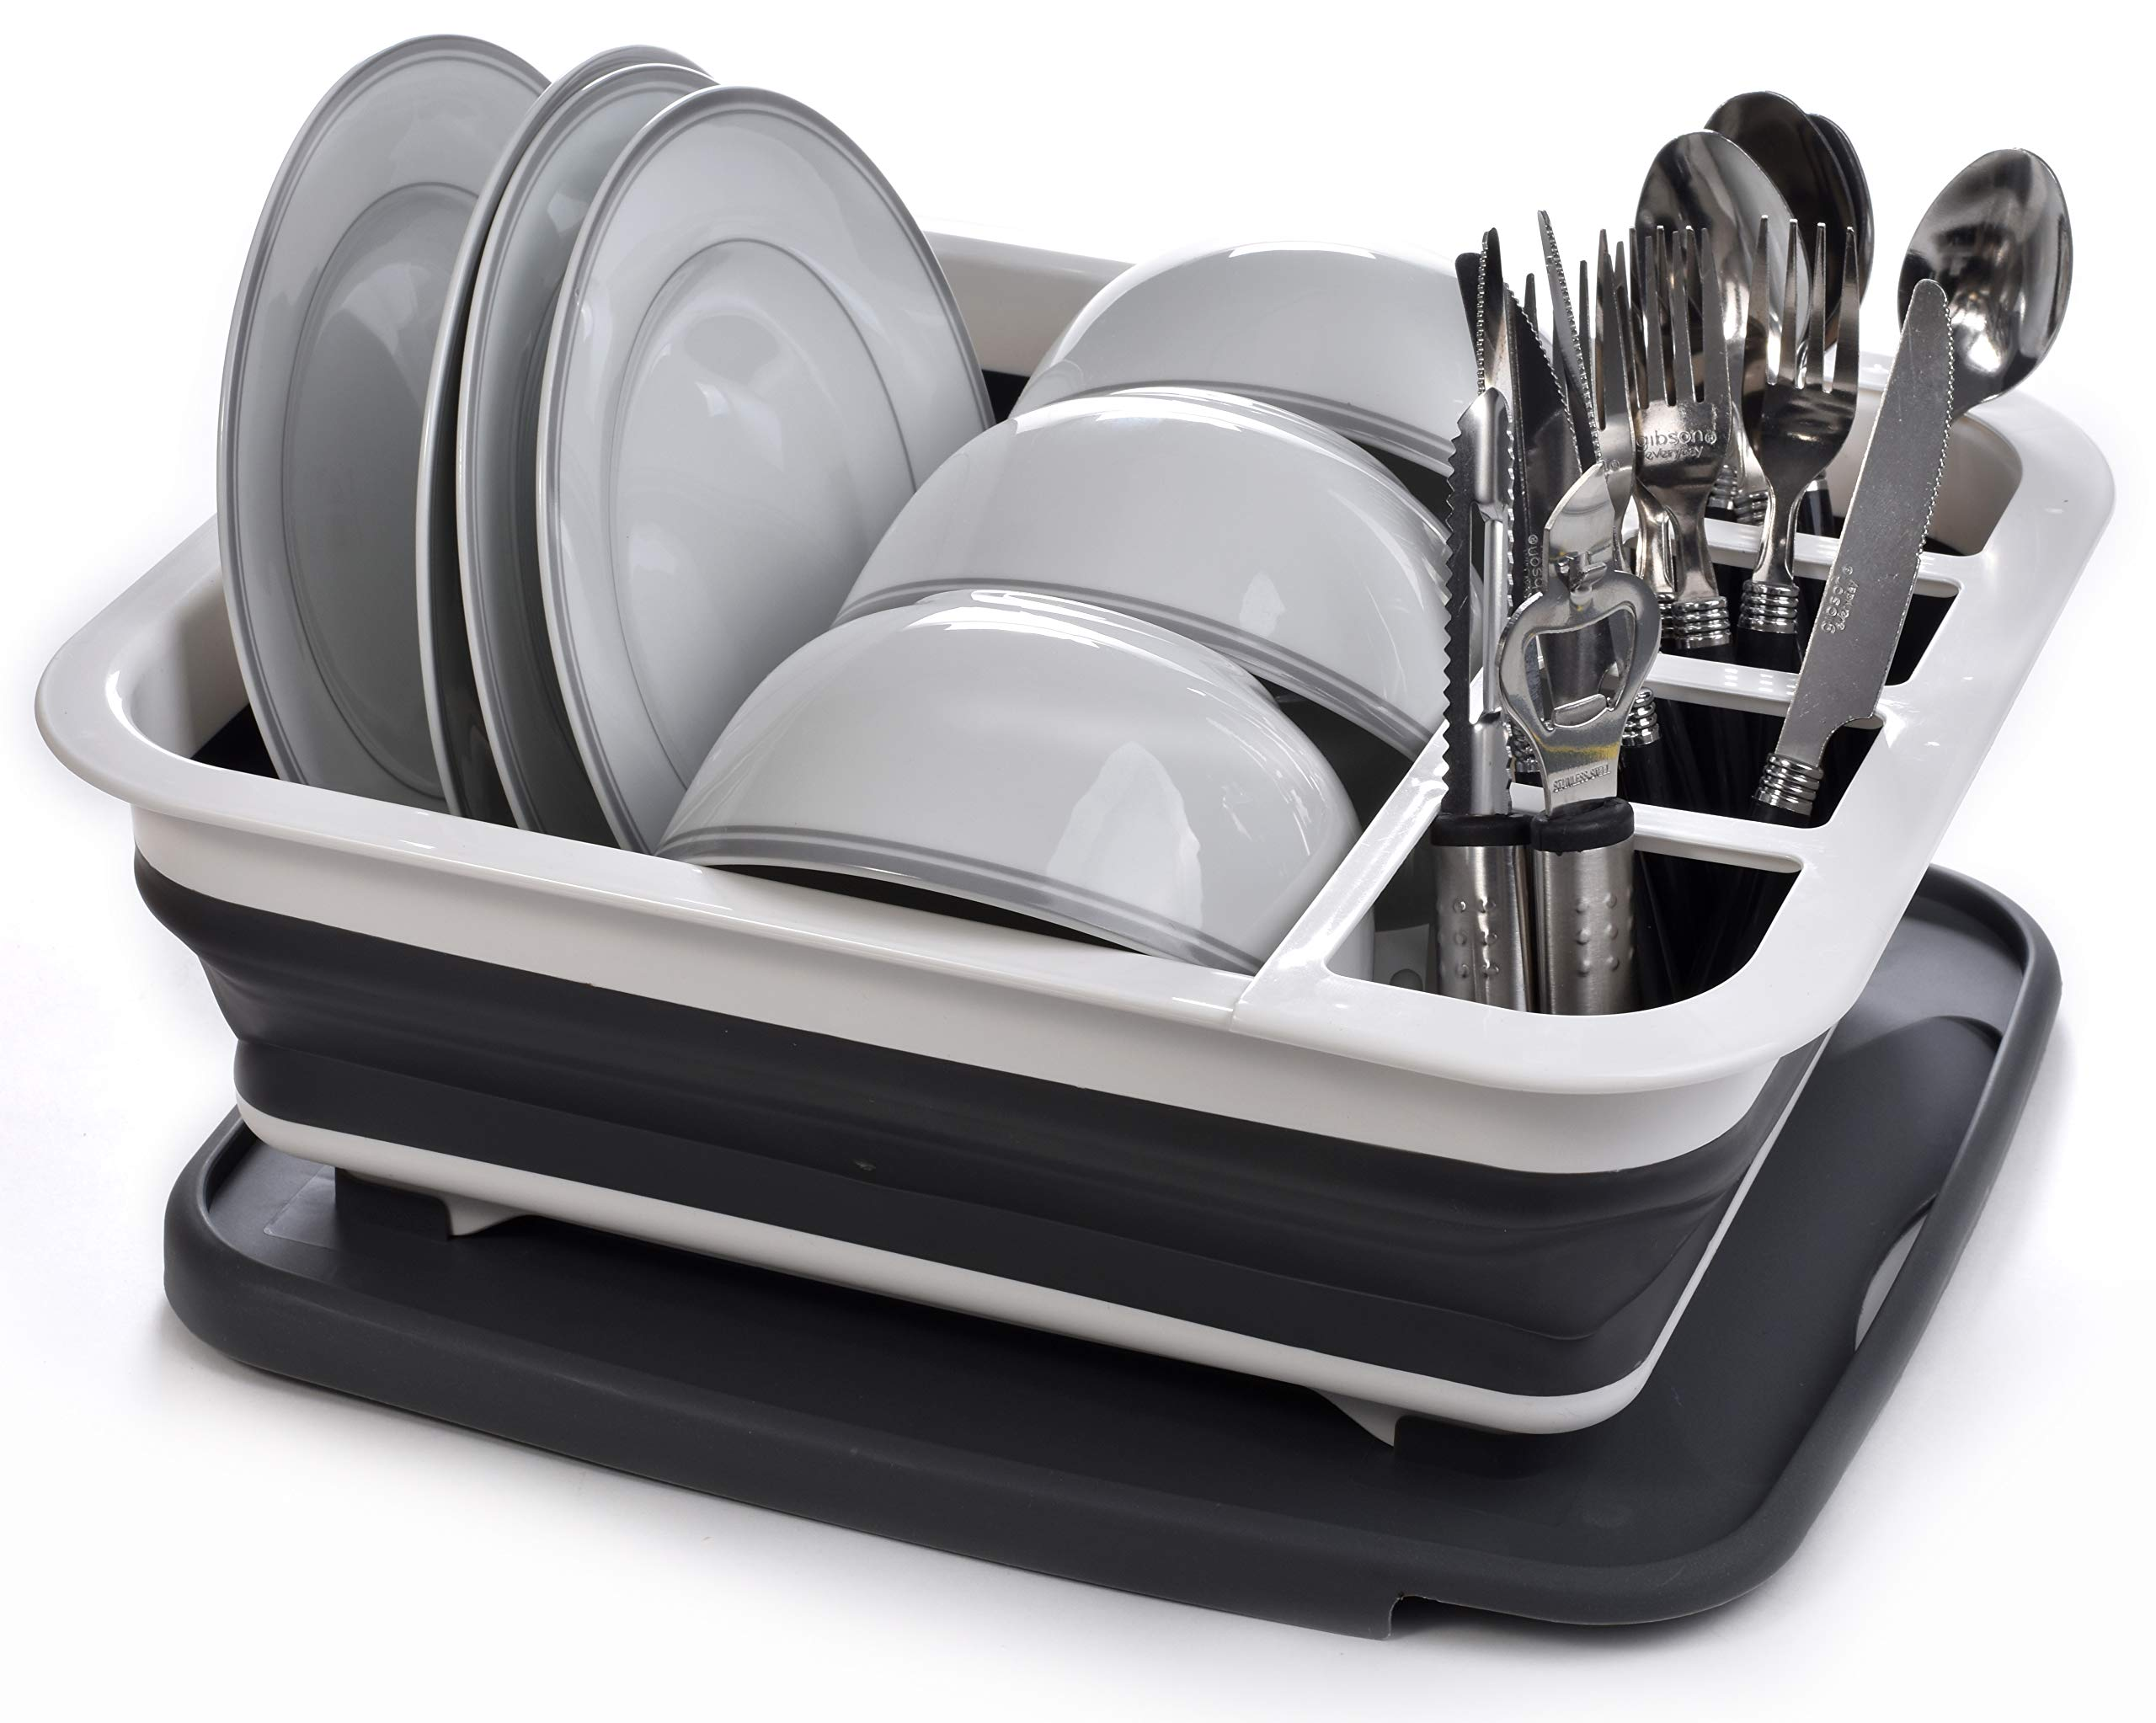 Collapsible Dish Drying Rack Compartment